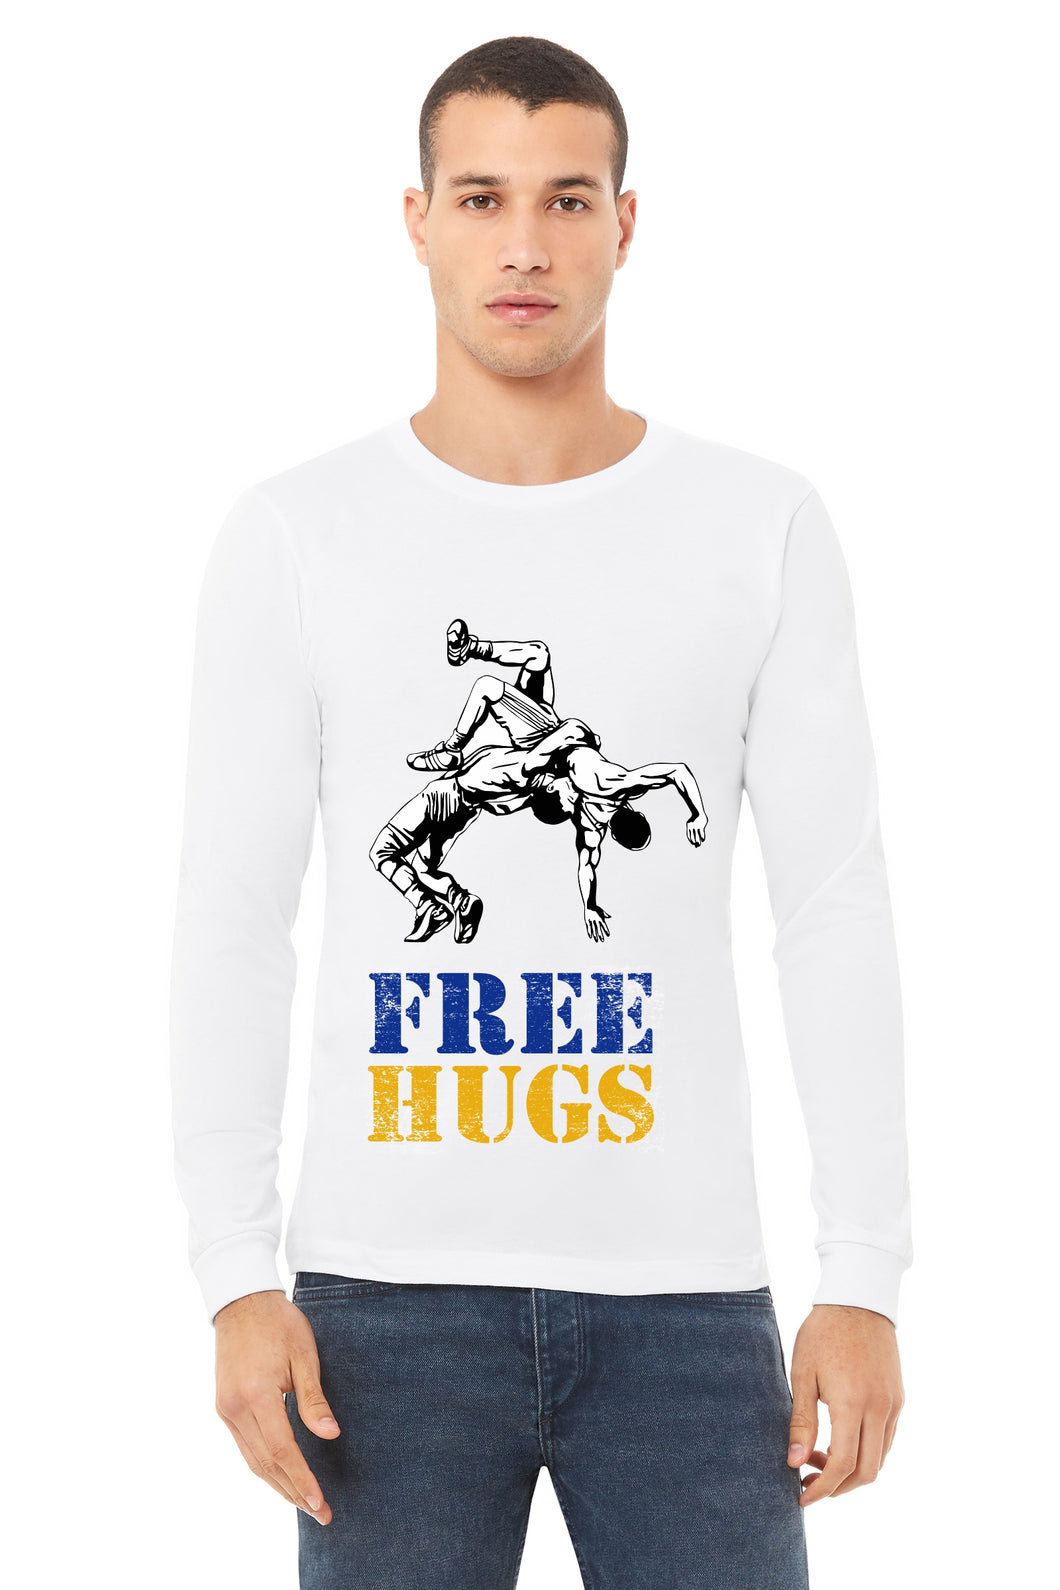 Free Hugs Wrestle Long Sleeved Unisex